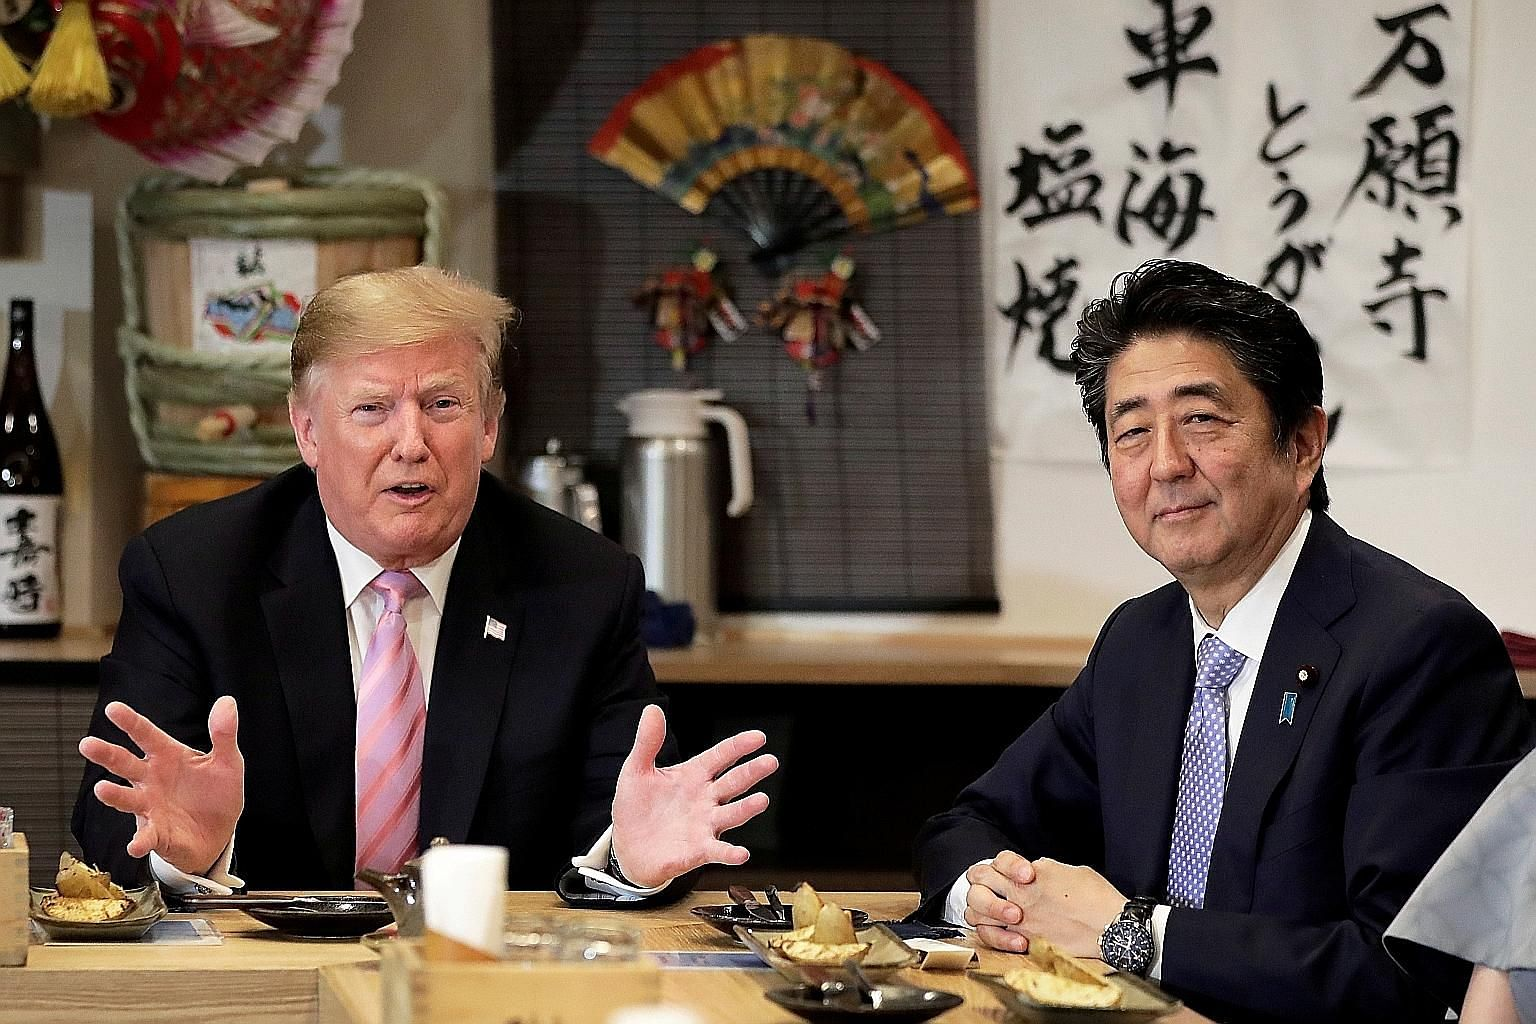 US President Donald Trump and Japanese Prime Minister Shinzo Abe (right) during dinner in Tokyo last month. Mr Trump is among several world leaders Mr Abe will be hosting at the G-20 Summit in Osaka on June 28-29.